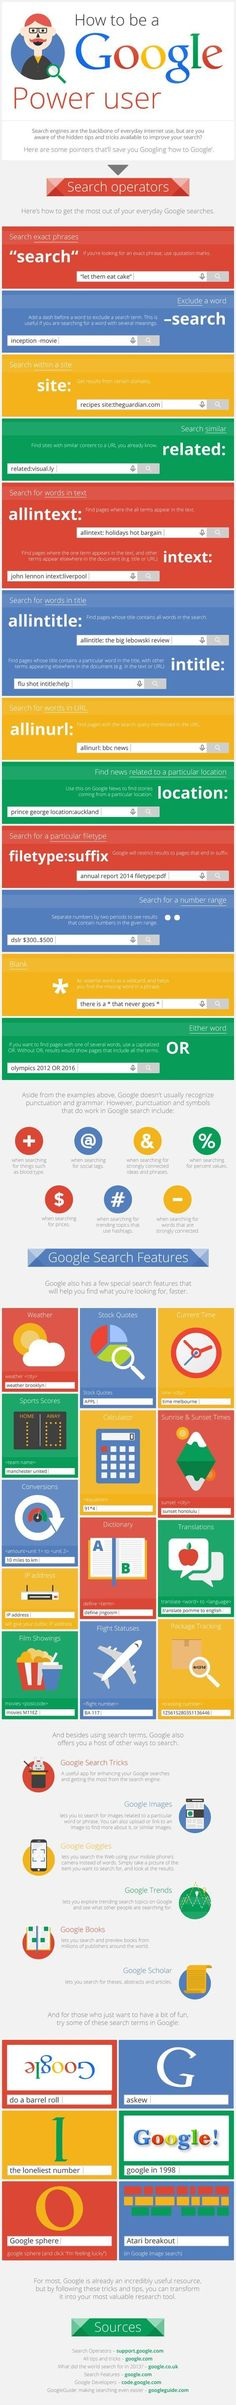 How to Become a Google Search Jedi Master - #infographic